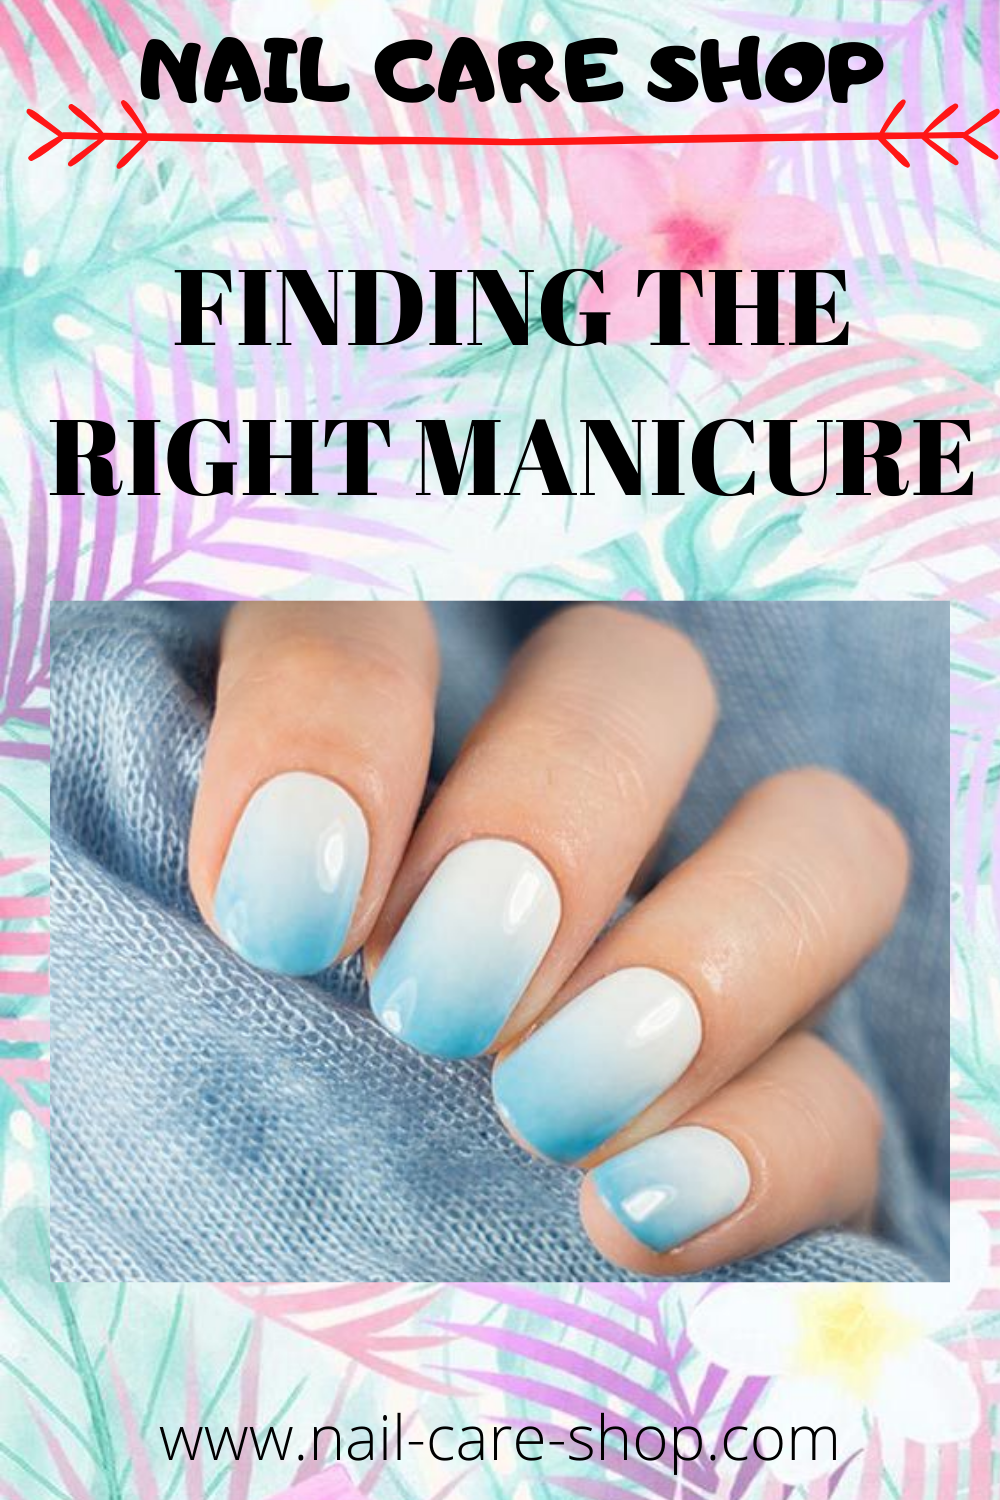 Finding The Right Manicure In 2020 Manicure Nail Care Tips Nail Care